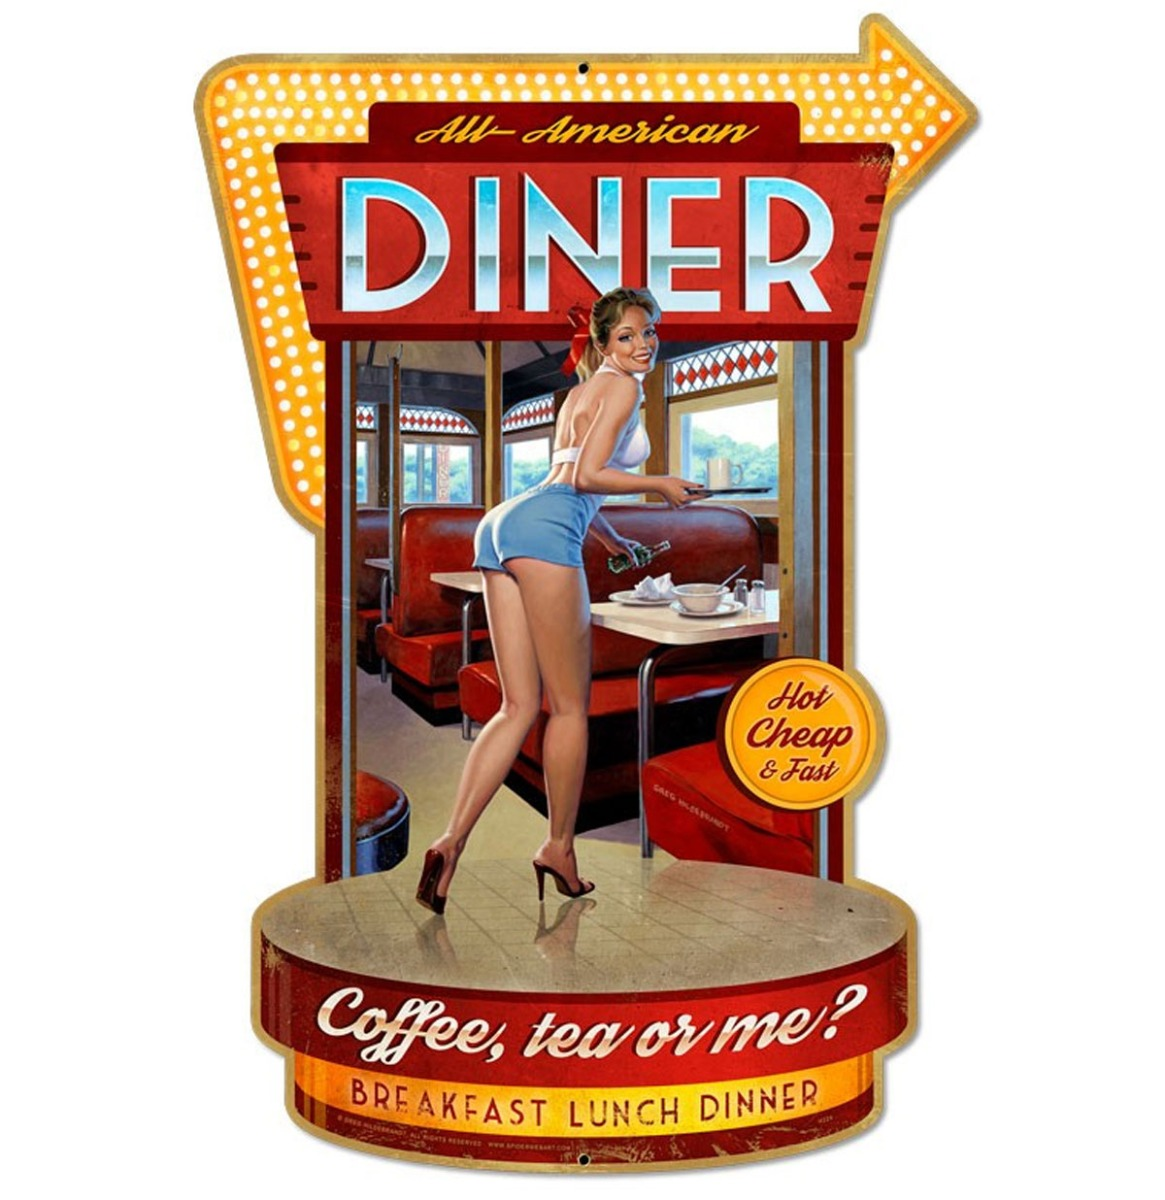 Diner Pin-Up Zwaar Metalen Bord 76 x 51 cm